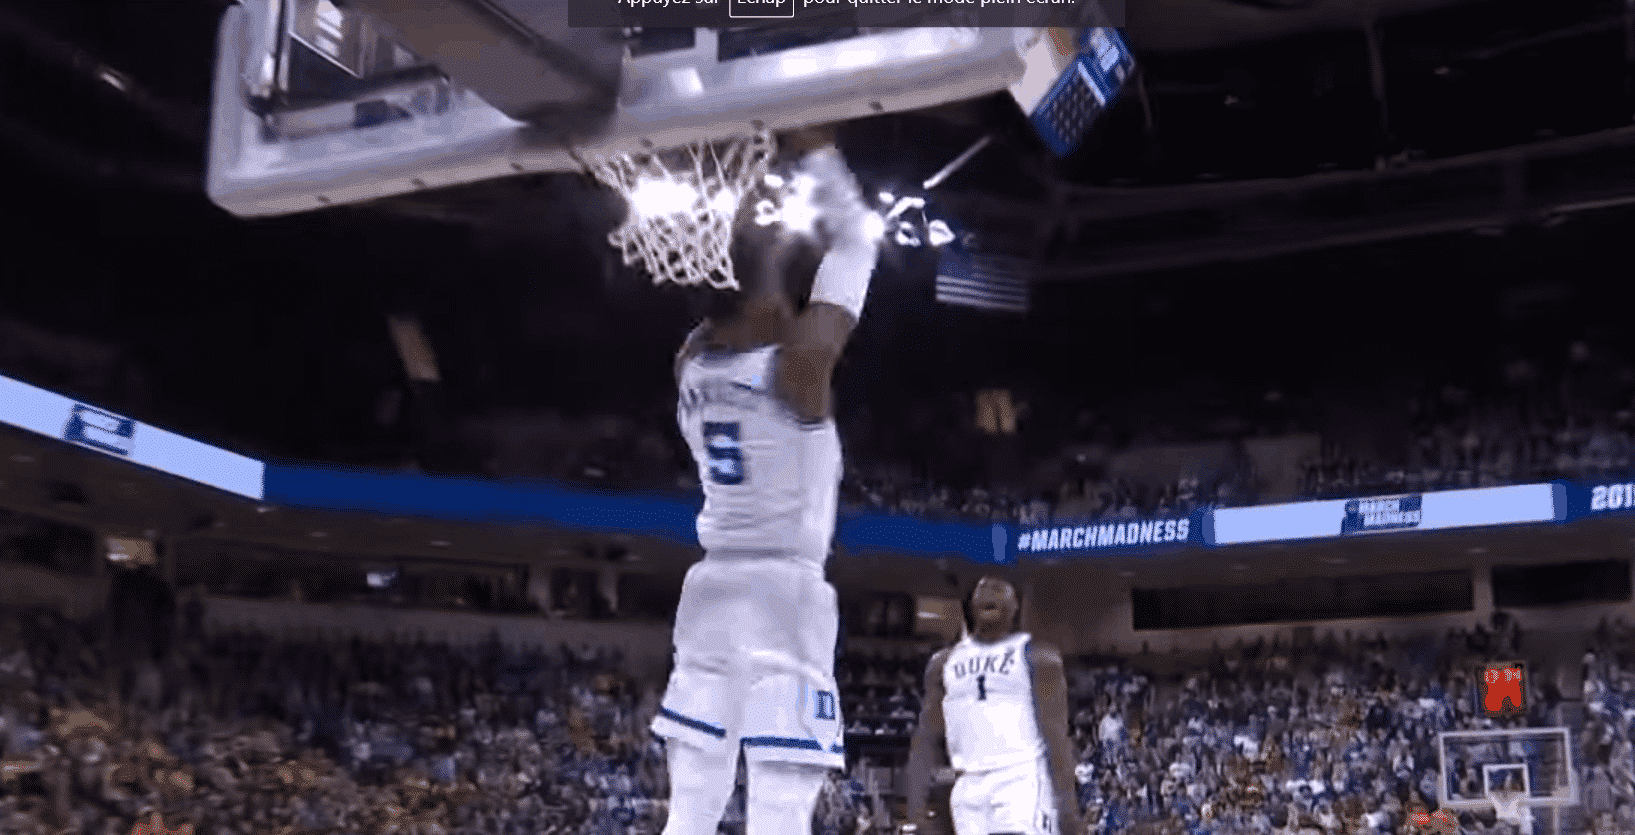 Top 10 NCAA : le gros dunk de RJ Barrett devant un Zion Williamson fou